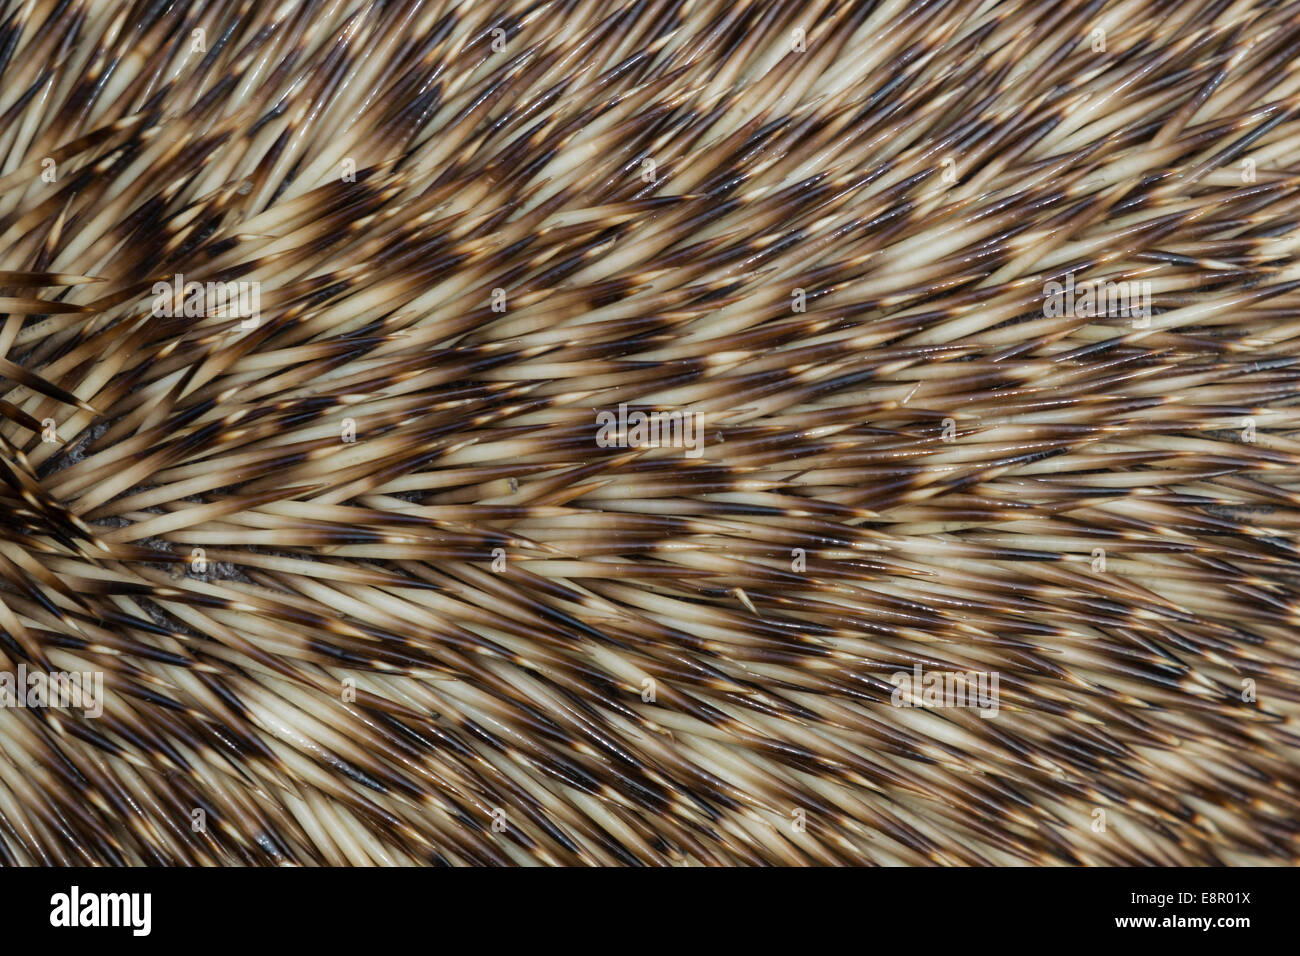 European hedgehog Erinaceus europaeus (captive), adult, close-up of spines, Knowle, West Midlands, UK in April. - Stock Image